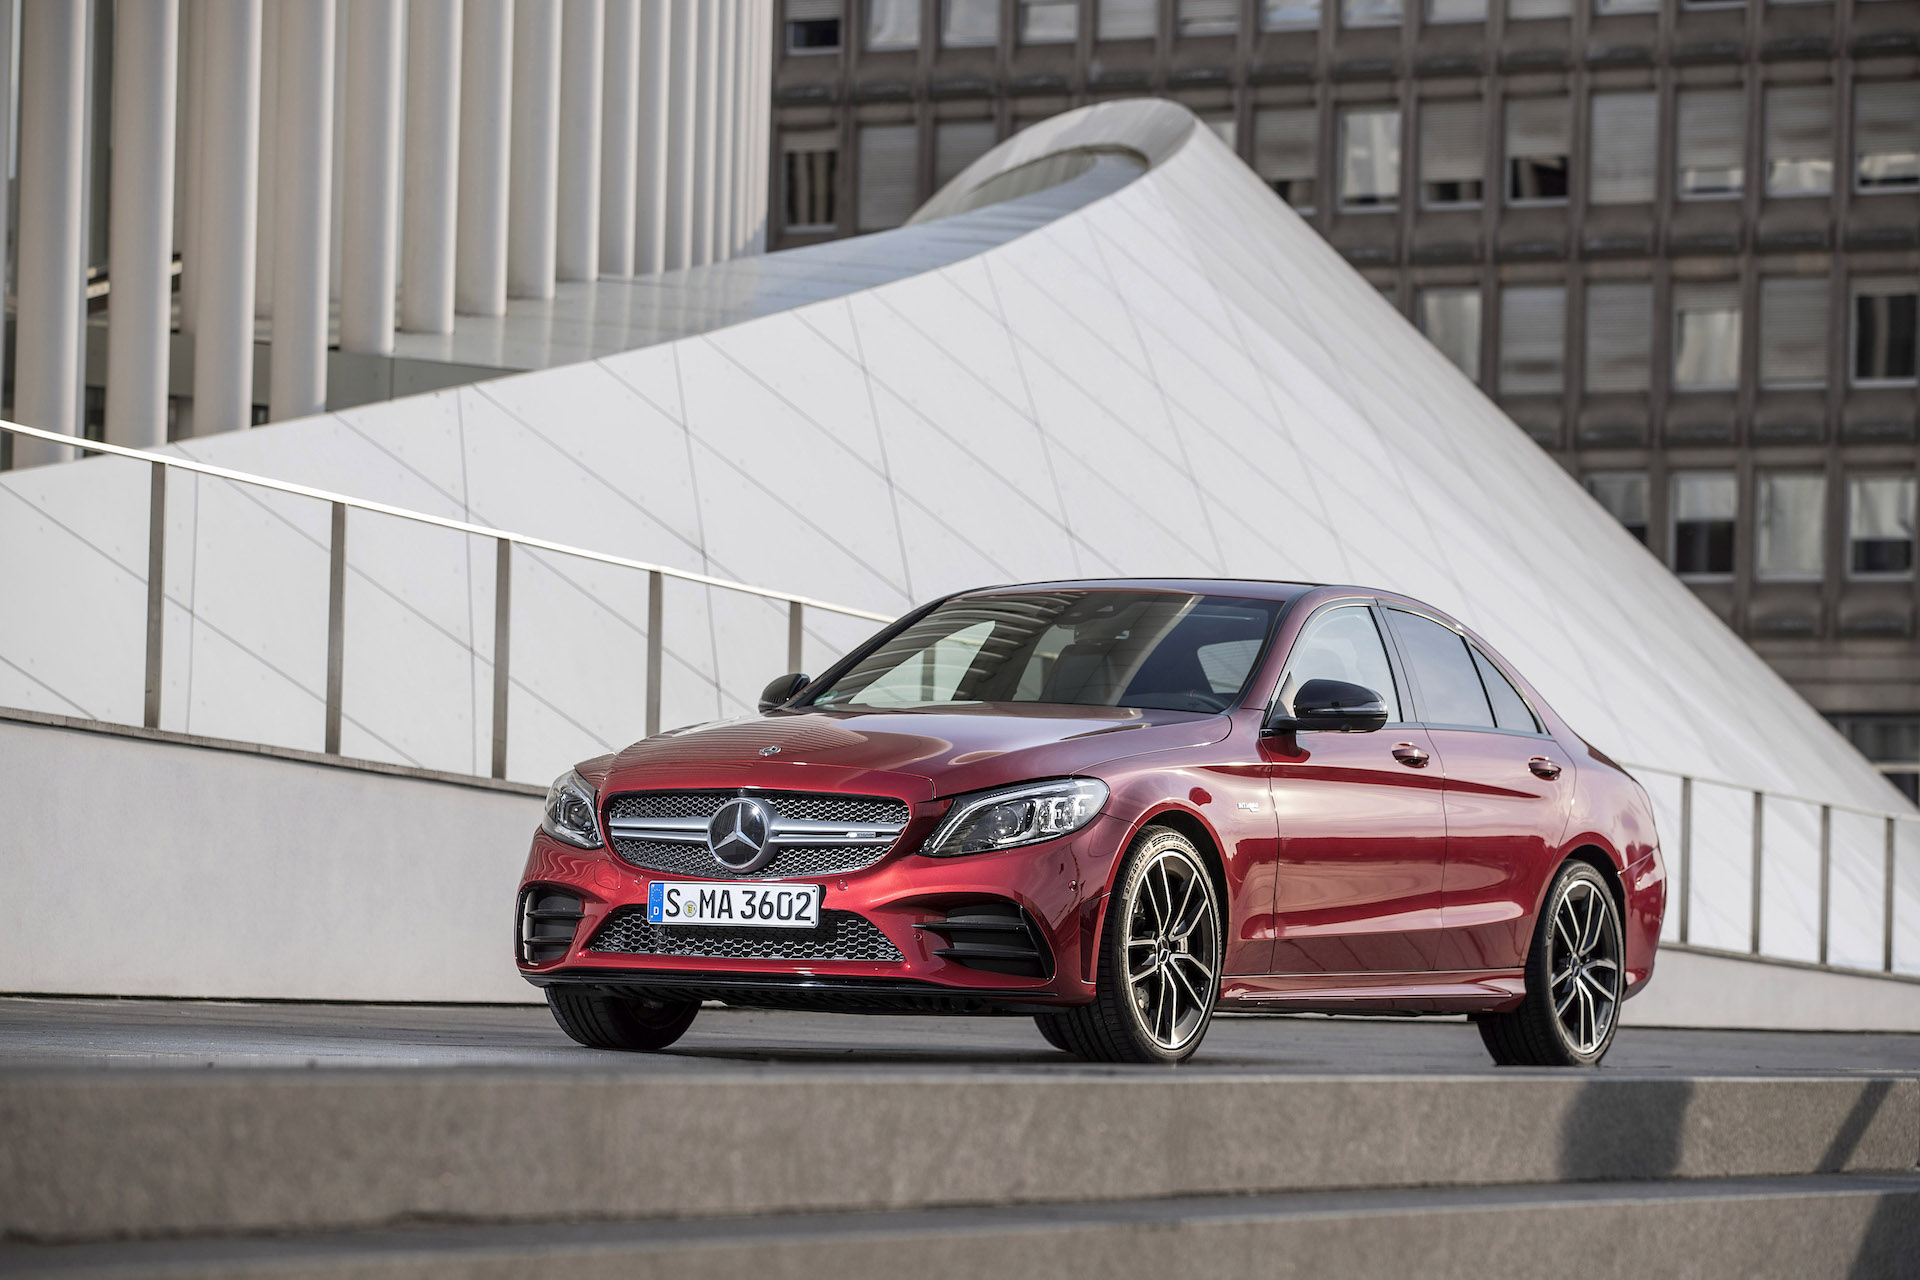 2019 Mercedes Benz C300 And C43 First Drive Review Subtle Upgrades